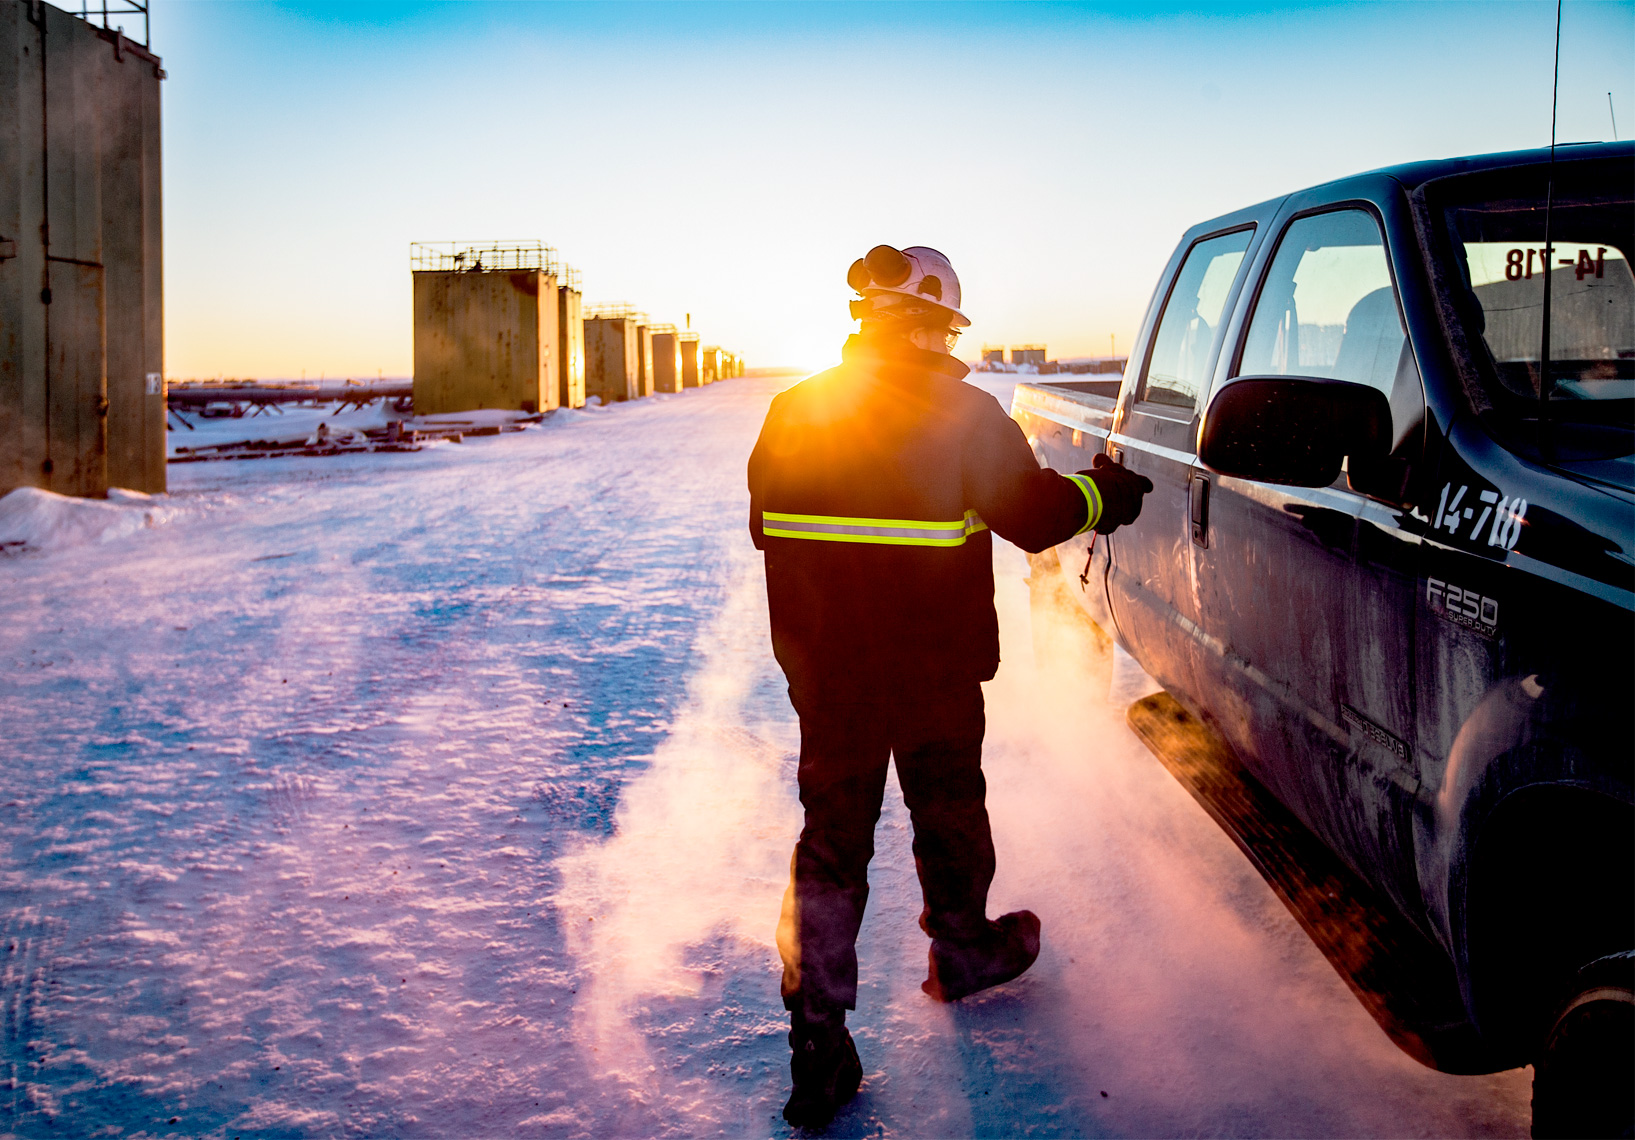 BP operator makes his way to the truck during a bitter cold winter day on the North Slope of Alaska.